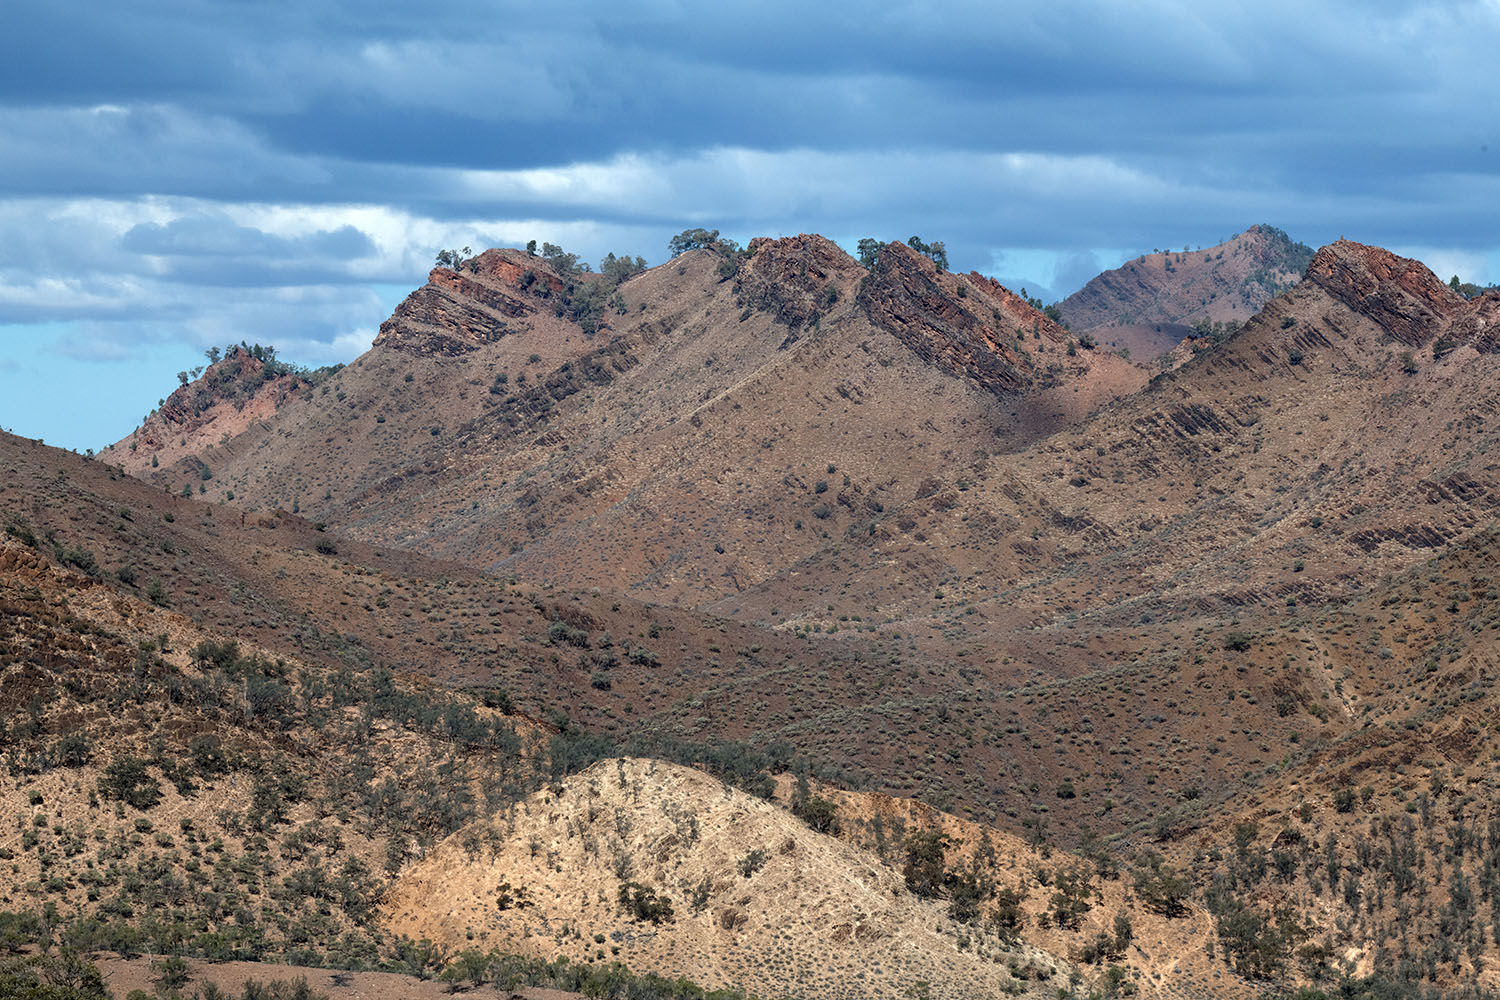 Rob Love, Photographer. Photo selection from Flinders Ranges, South Australia